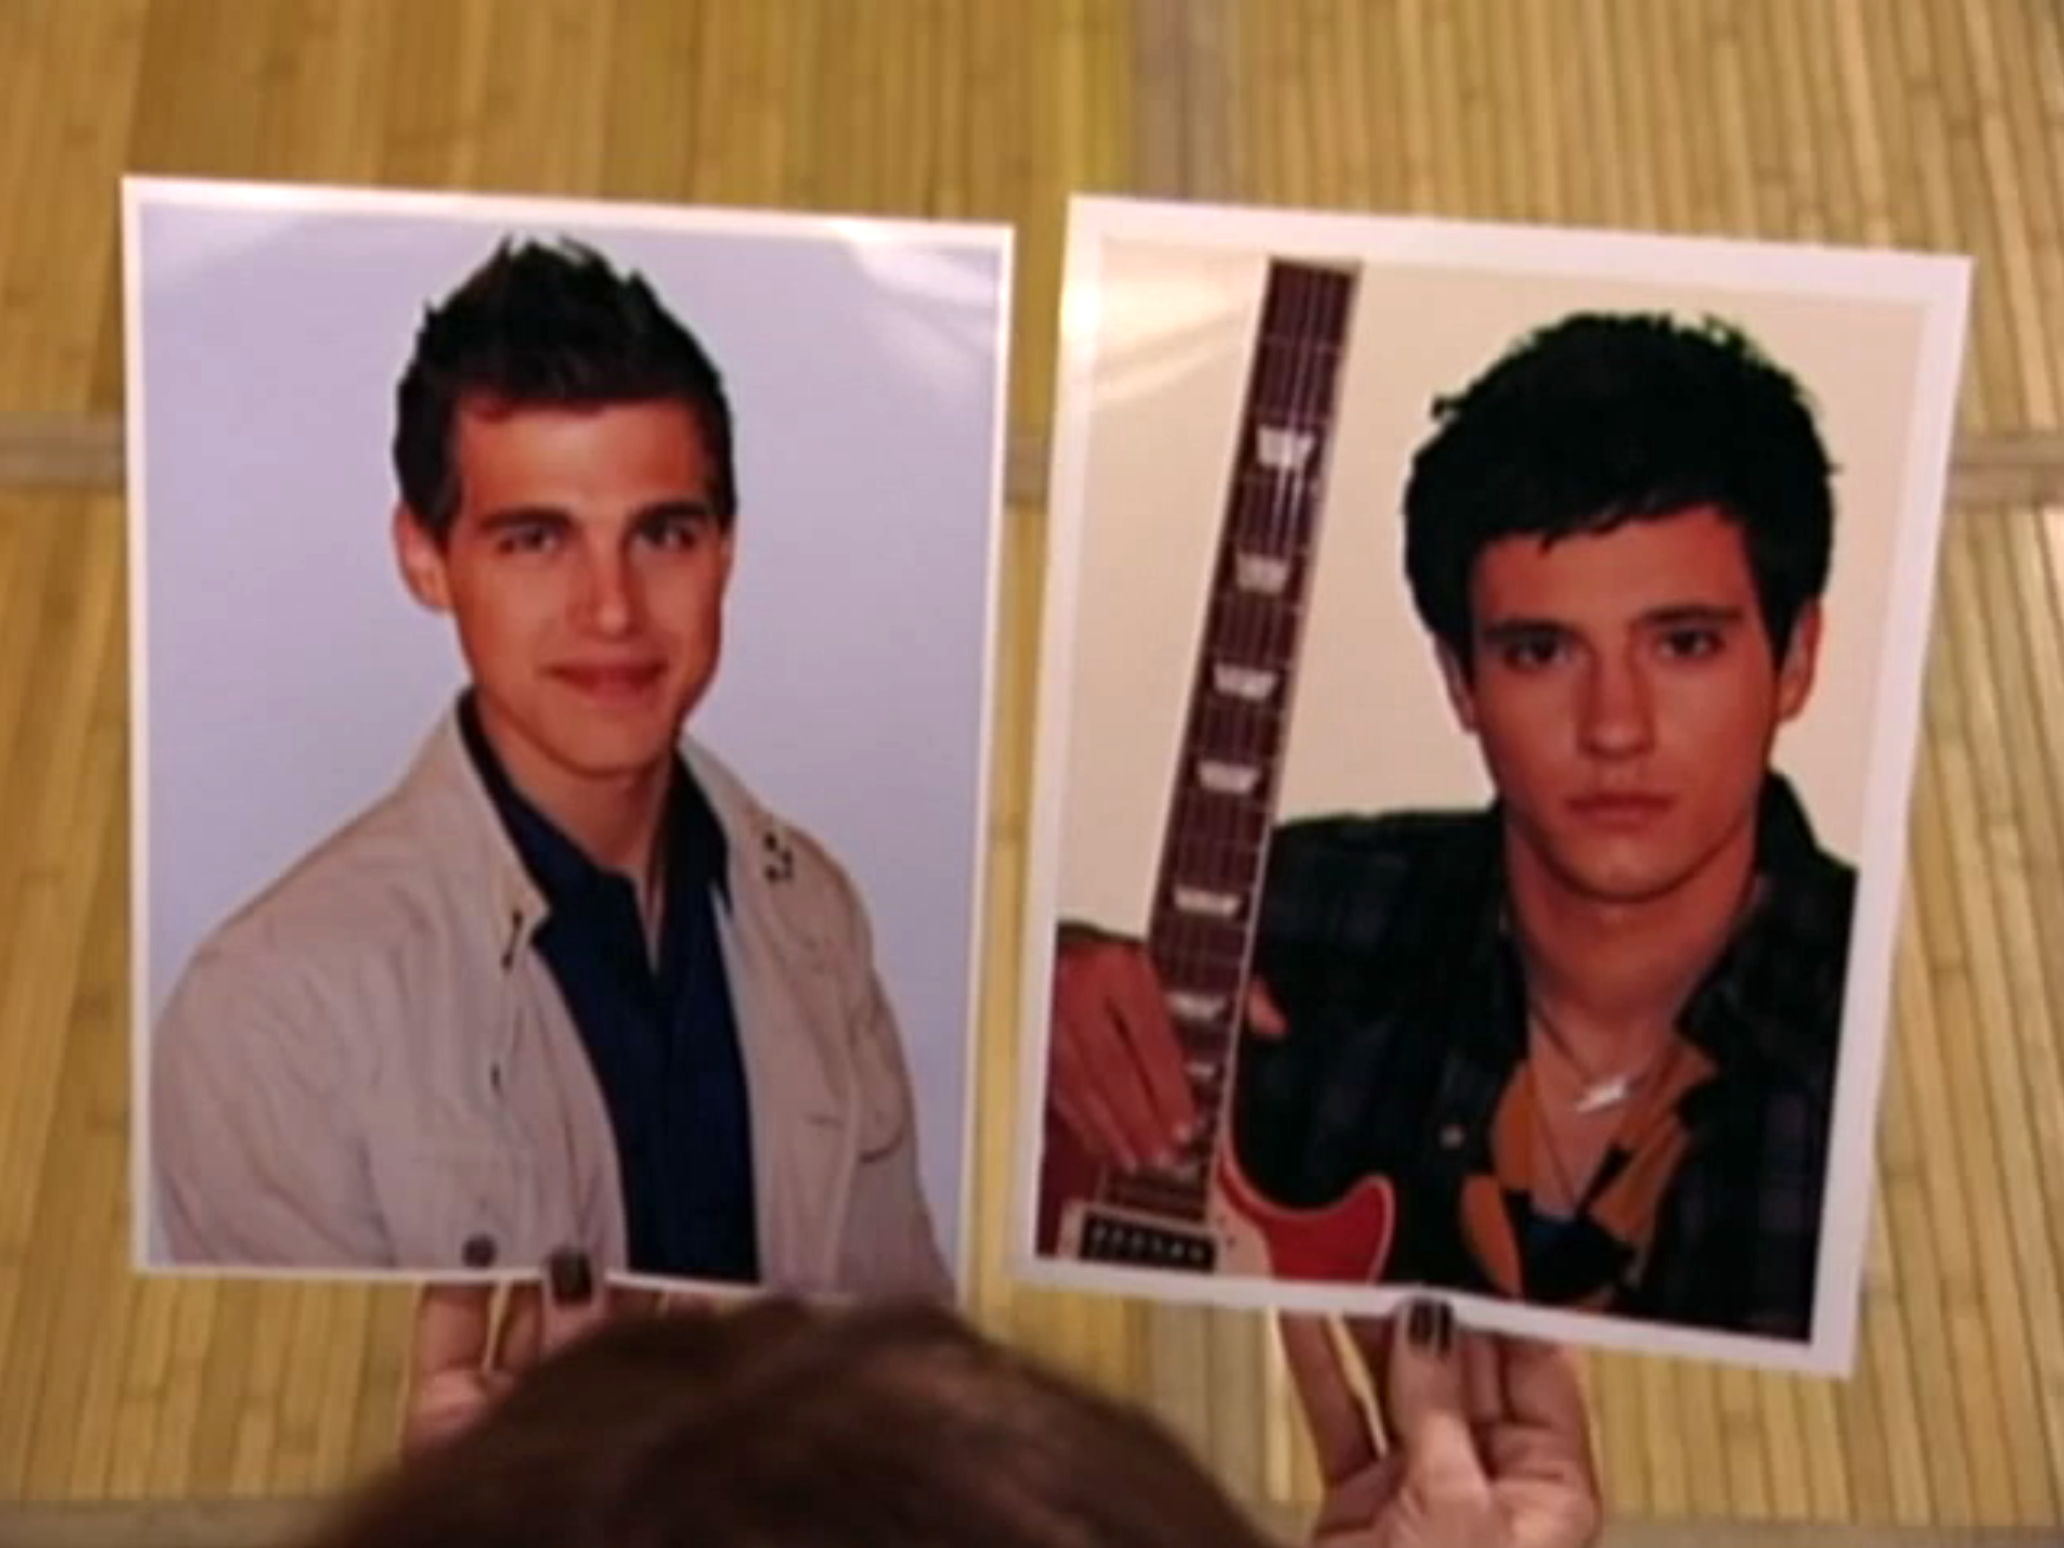 Who's Your Hannah Montana Boyfriend — Jake Or Jesse? [QUIZ] - MTV